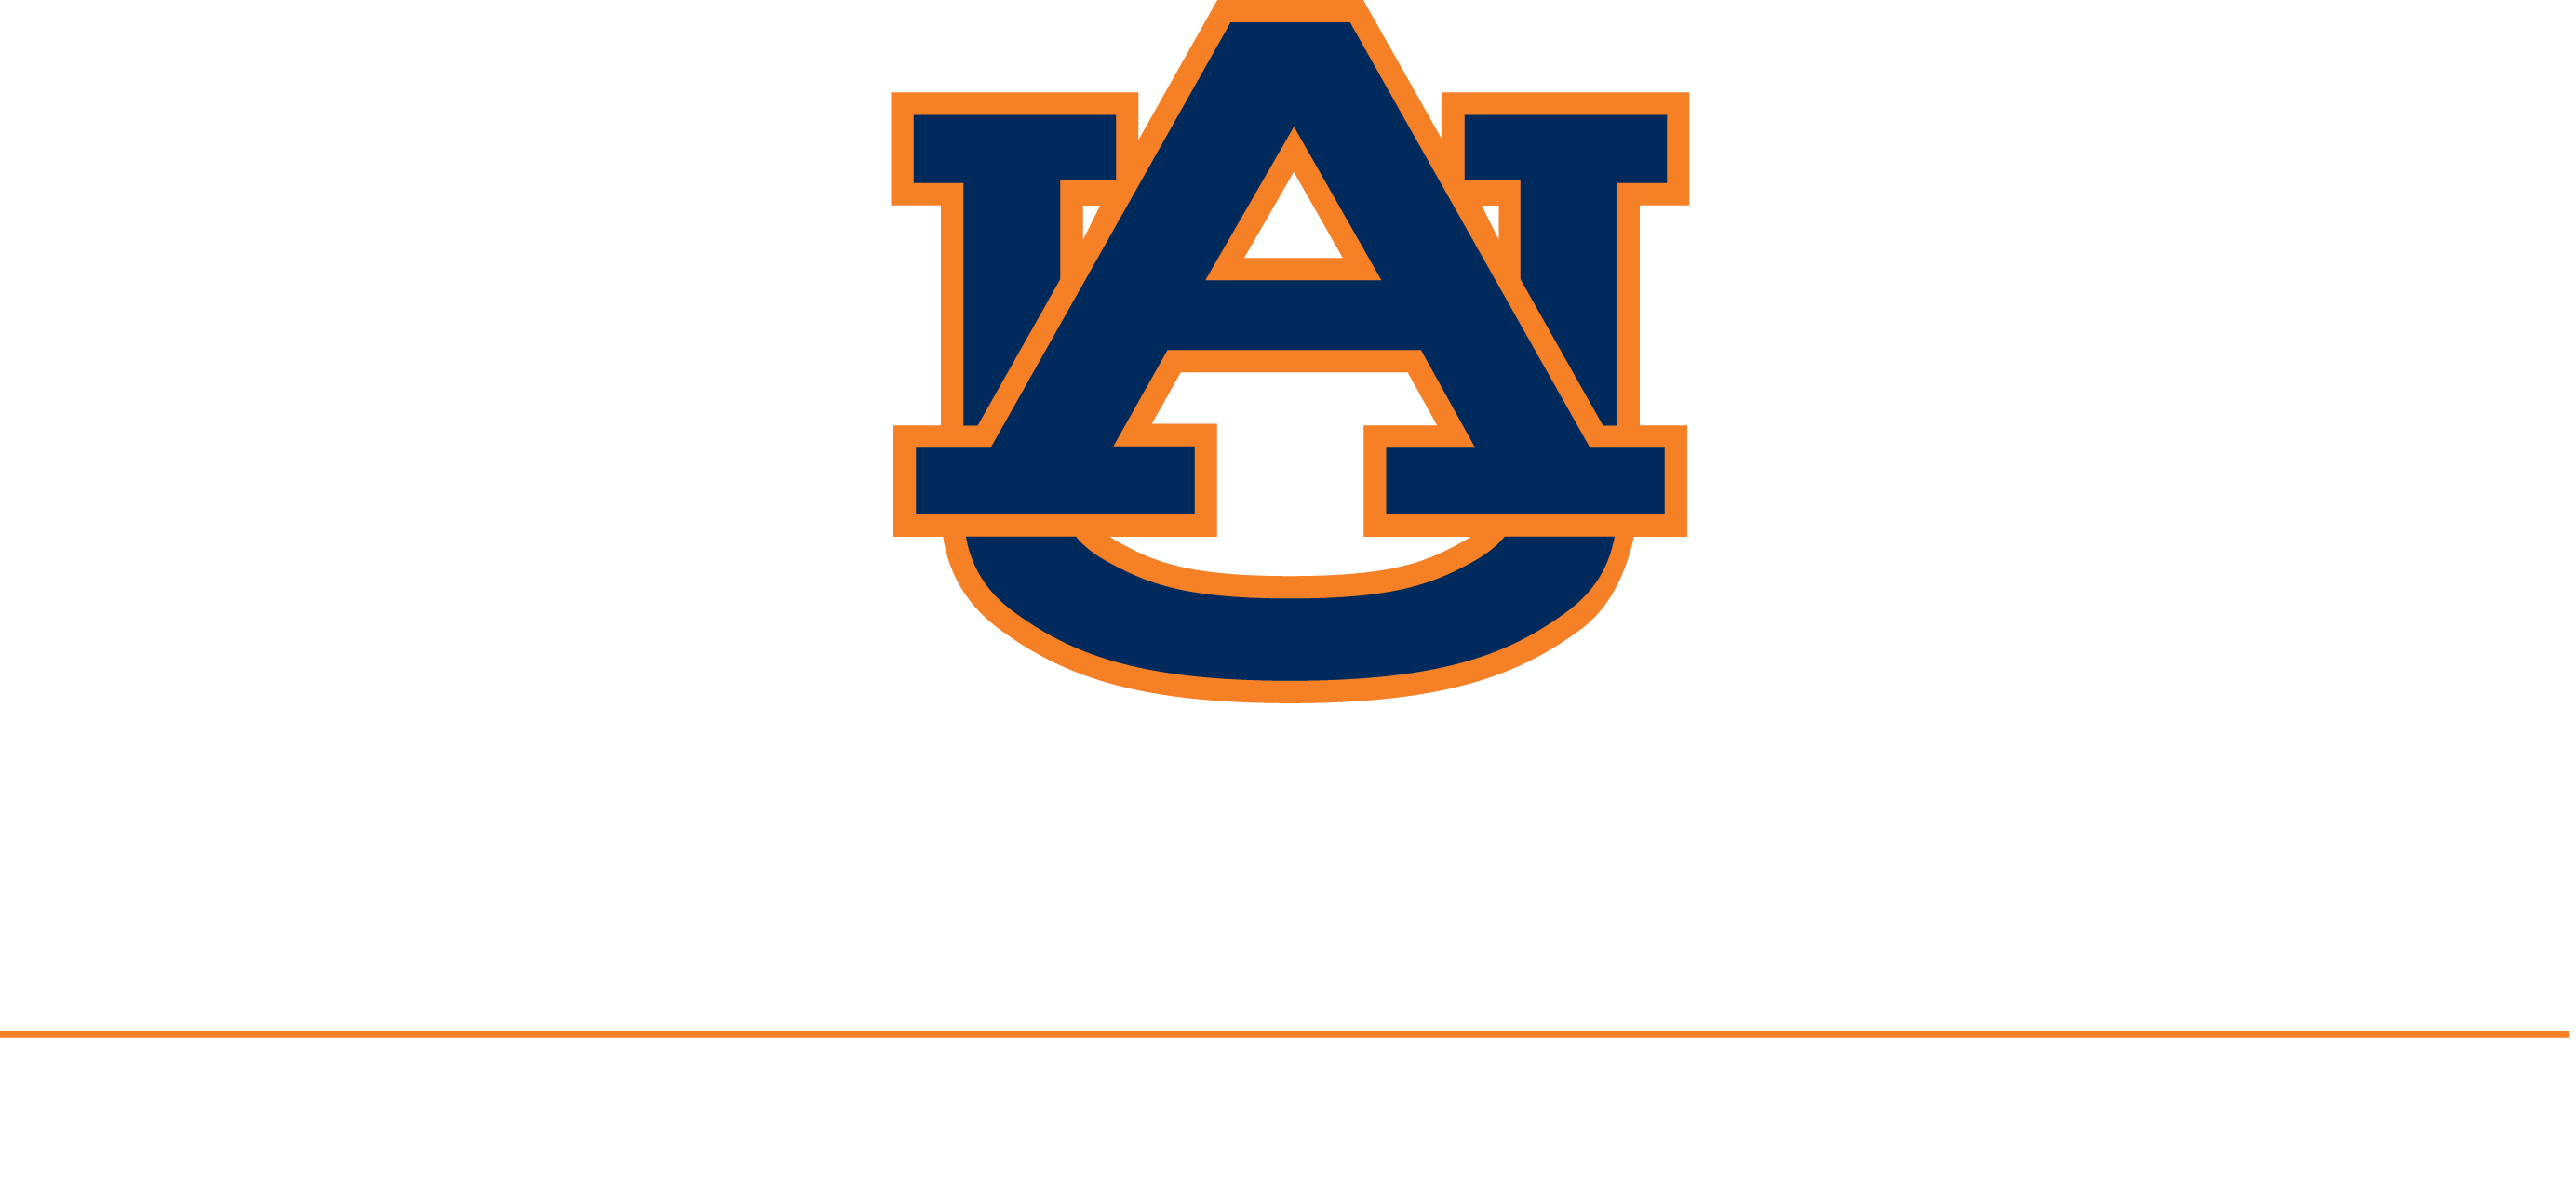 Auburn University College of Liberal Arts logo